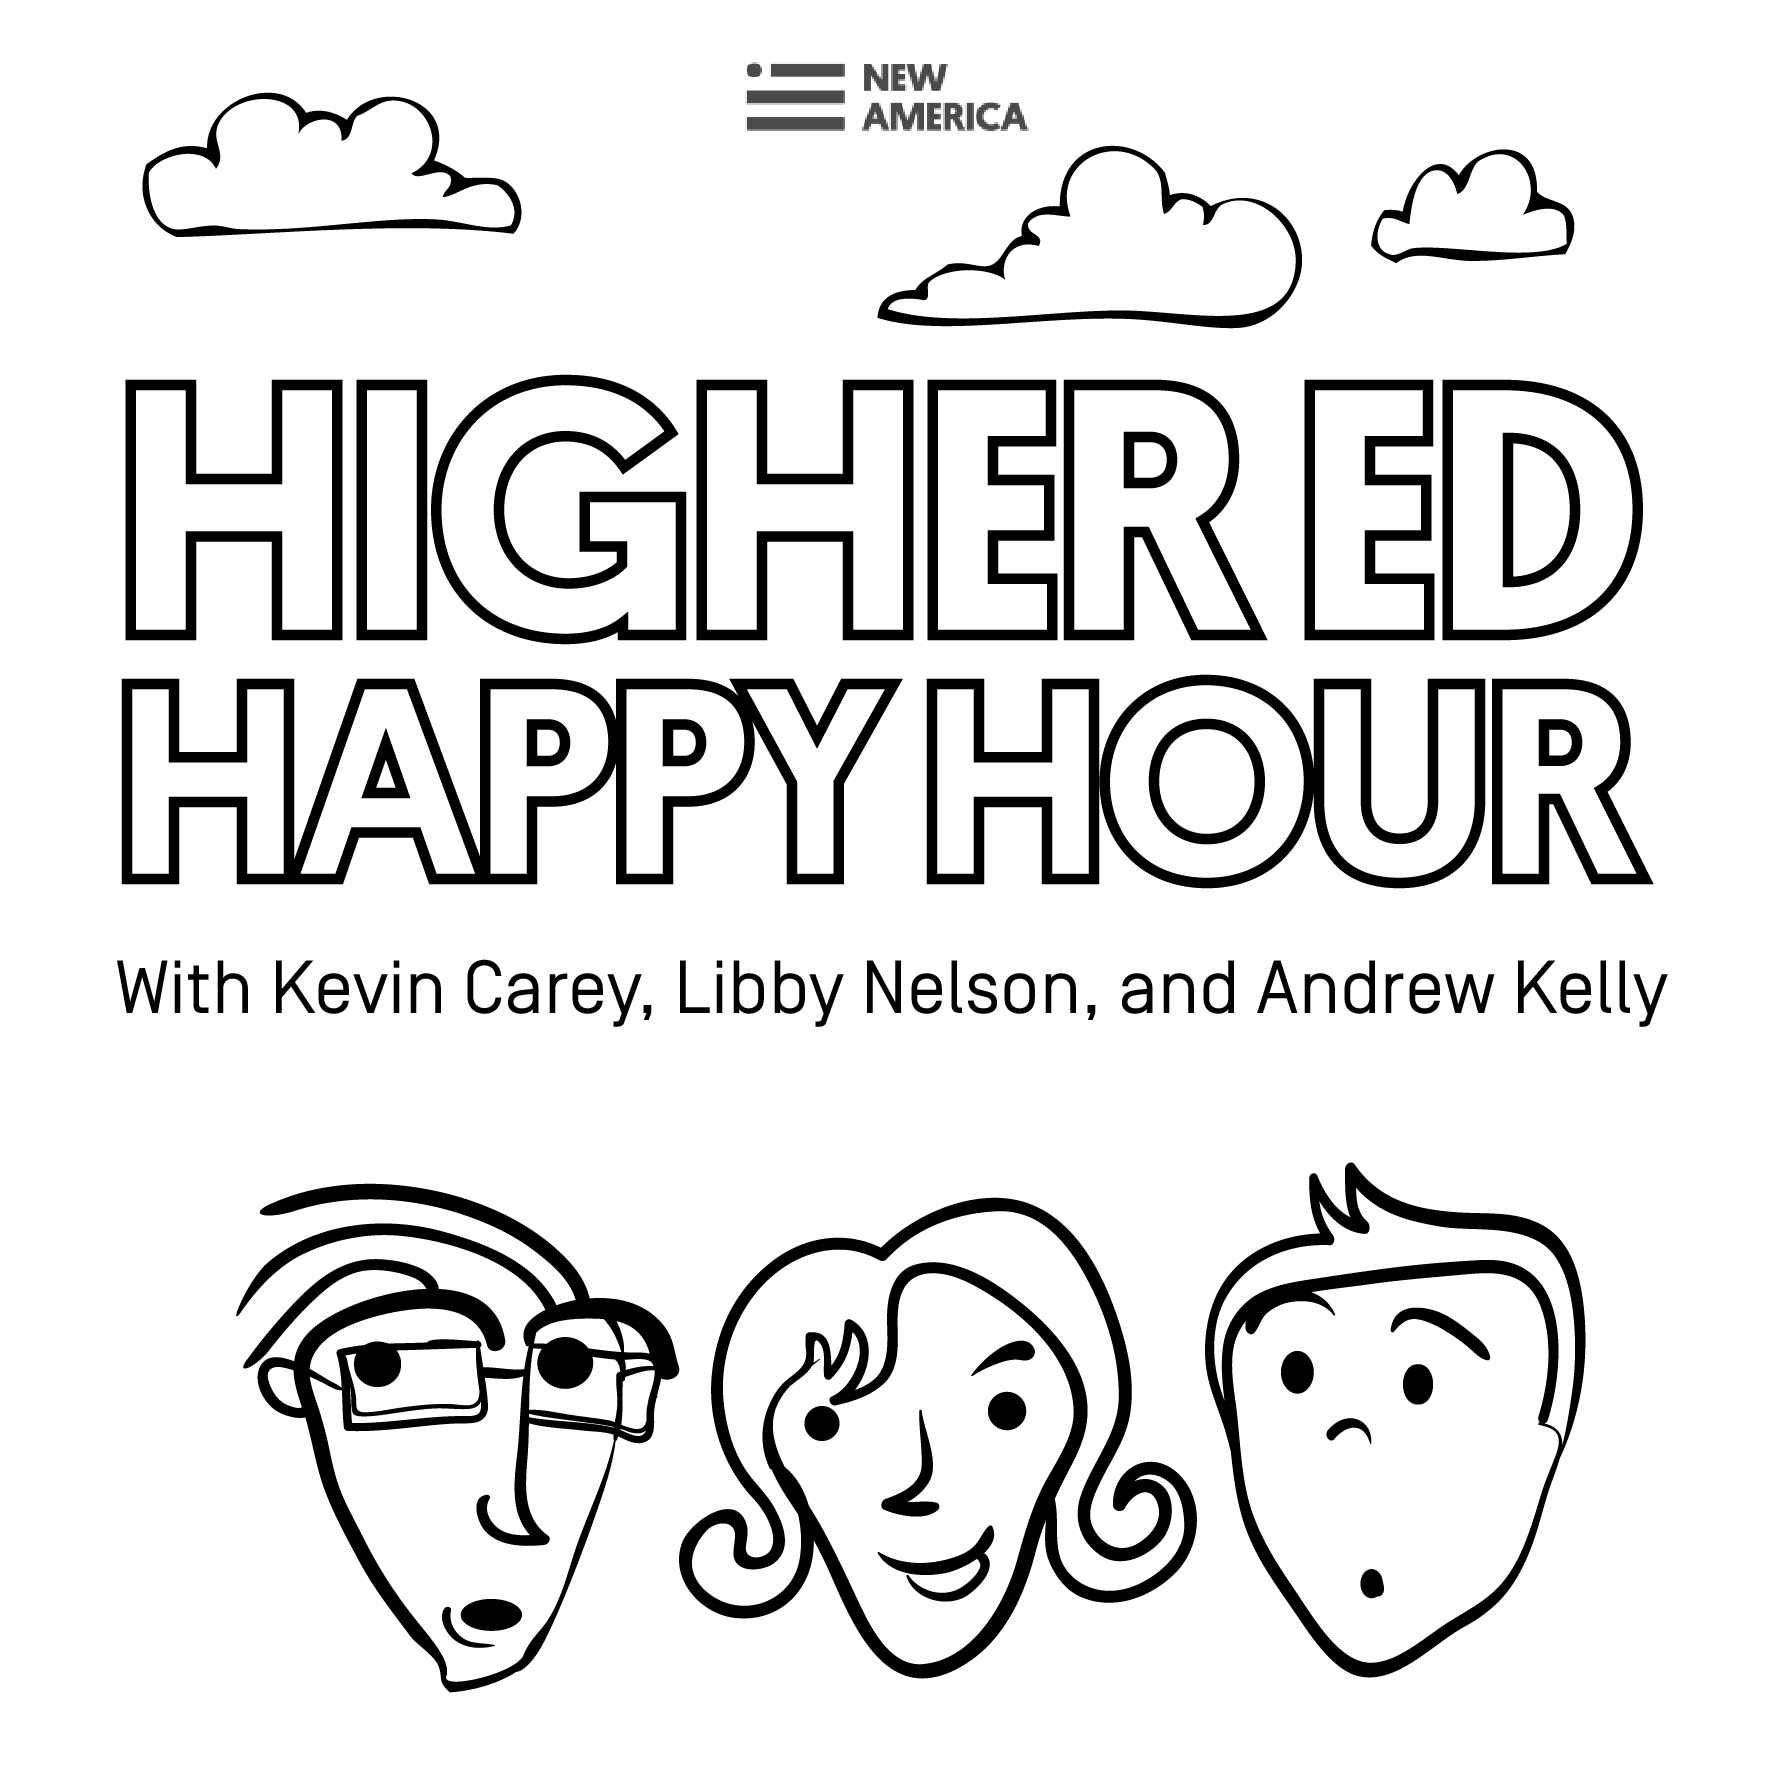 Higher Ed Happy Hour